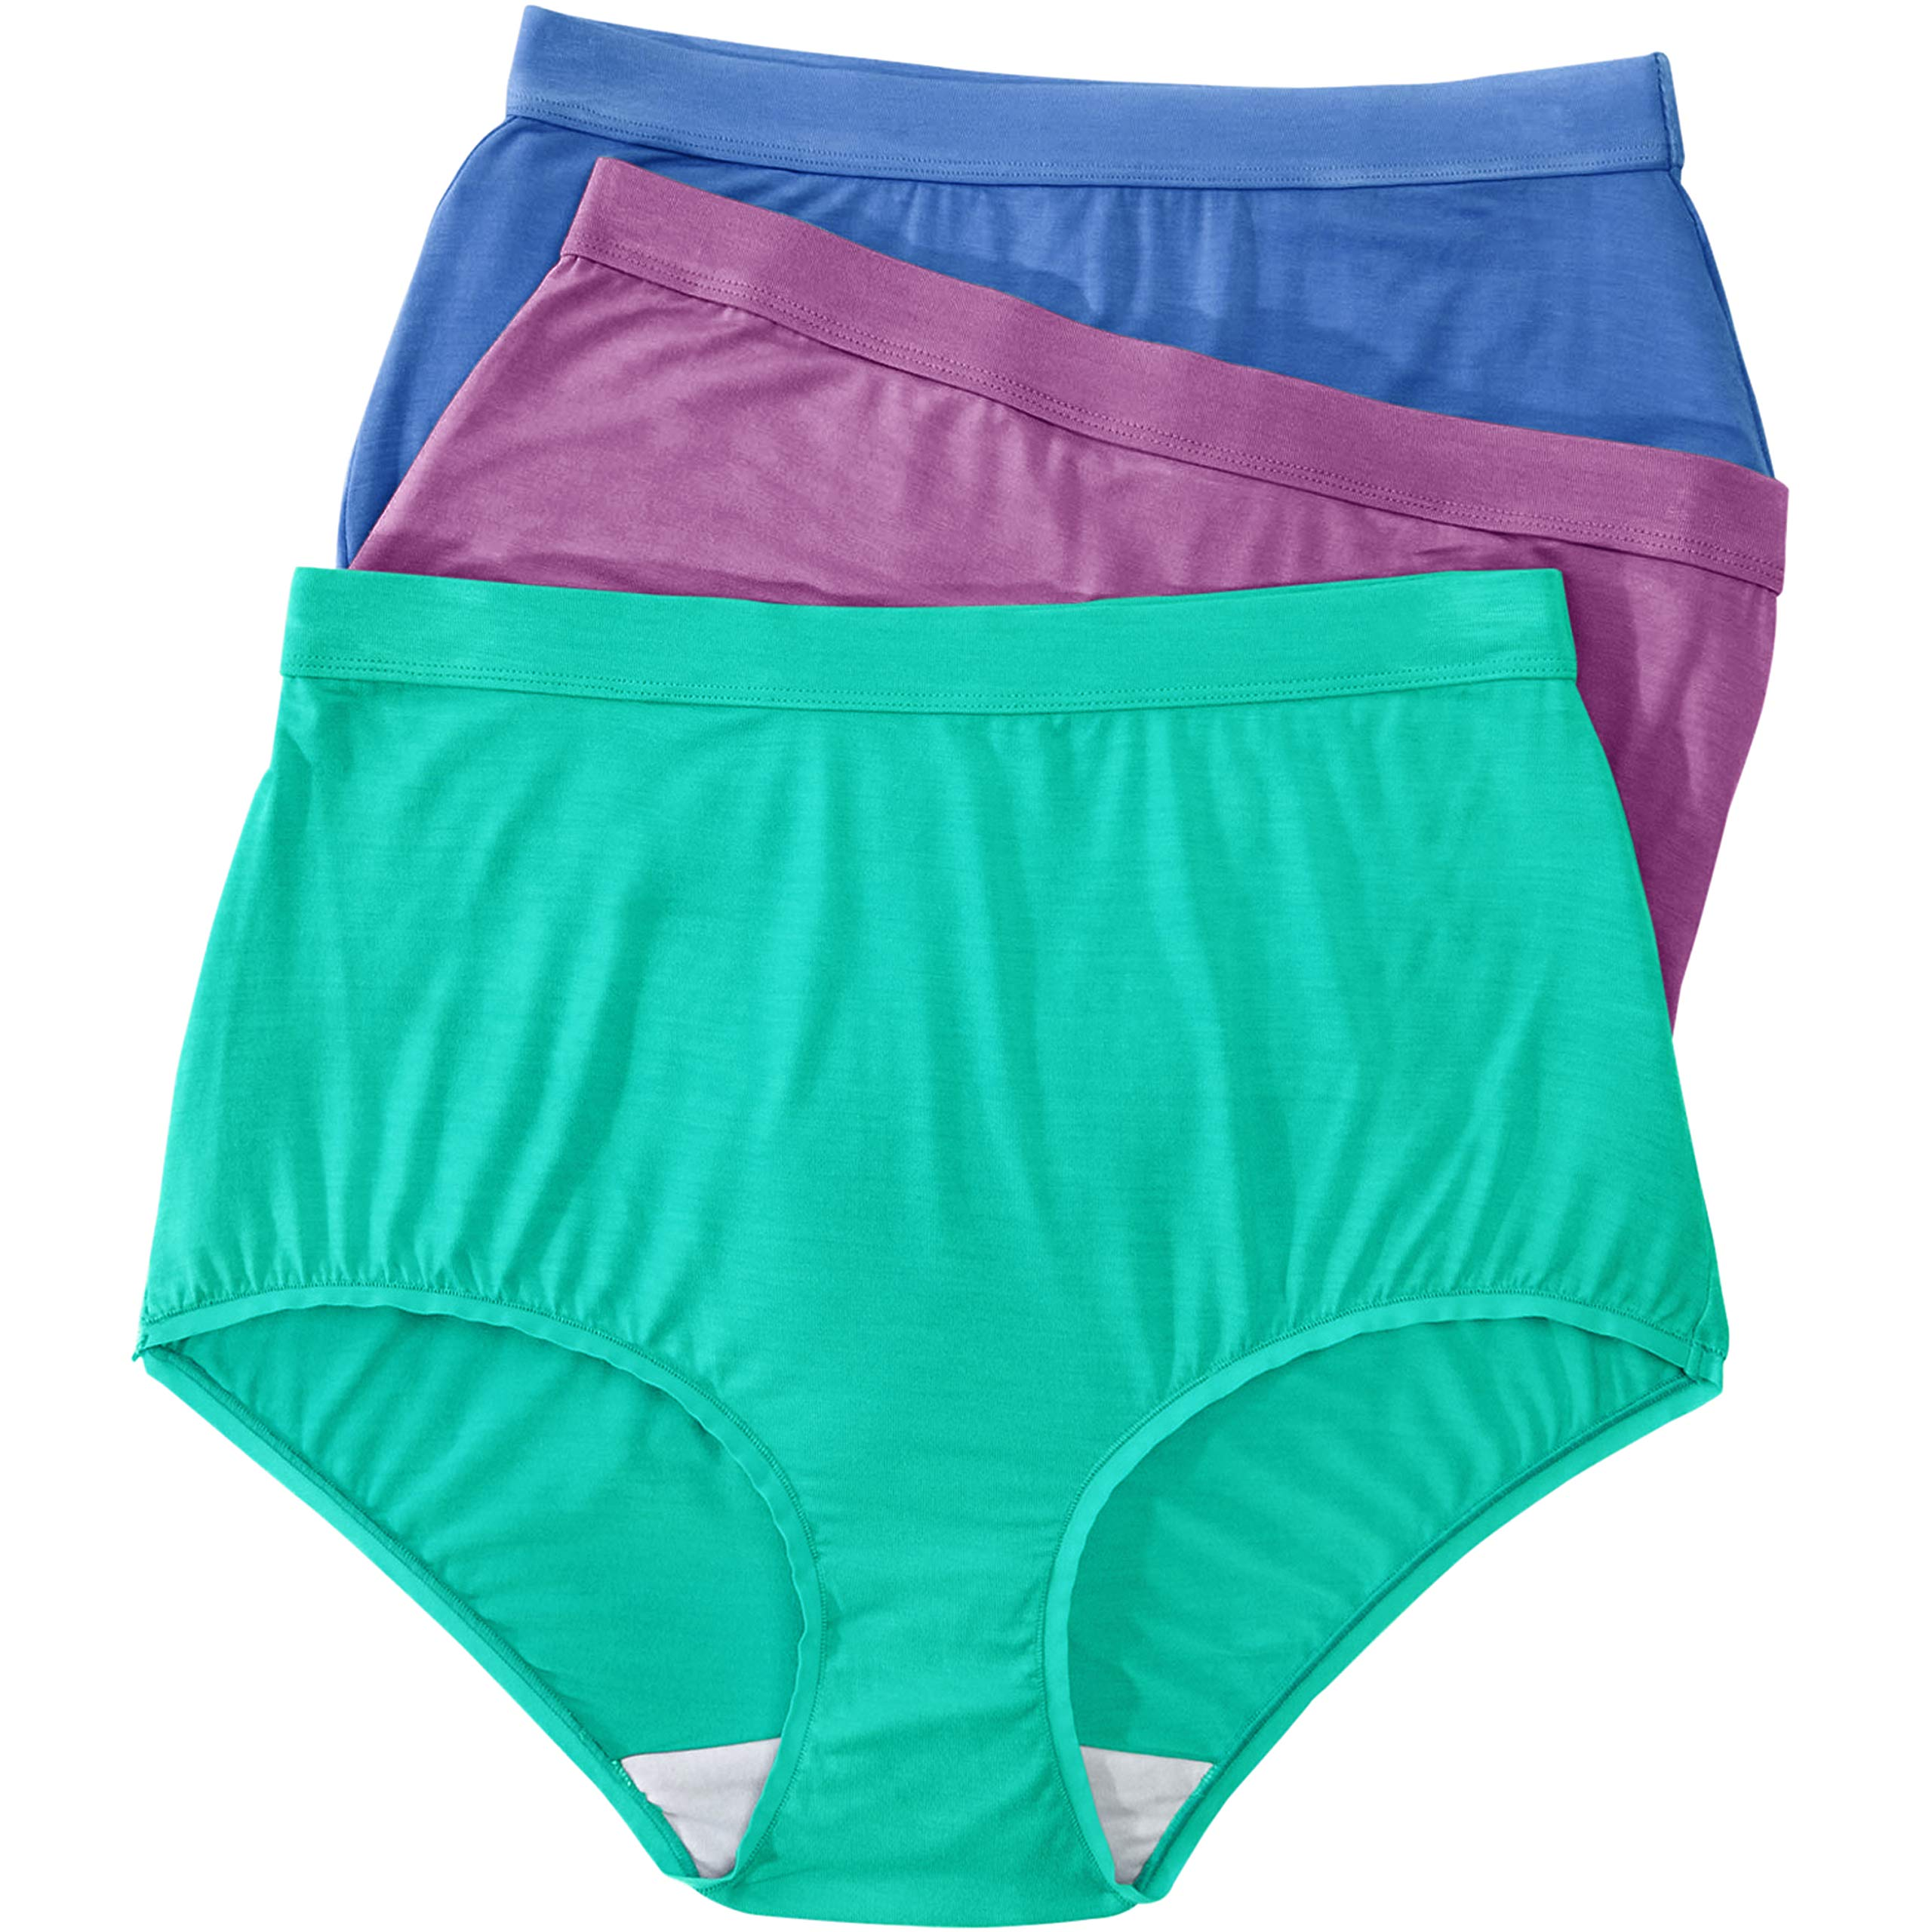 Comfort Choice Women's Plus Size 3-Pack Modal Full-Cut Brief